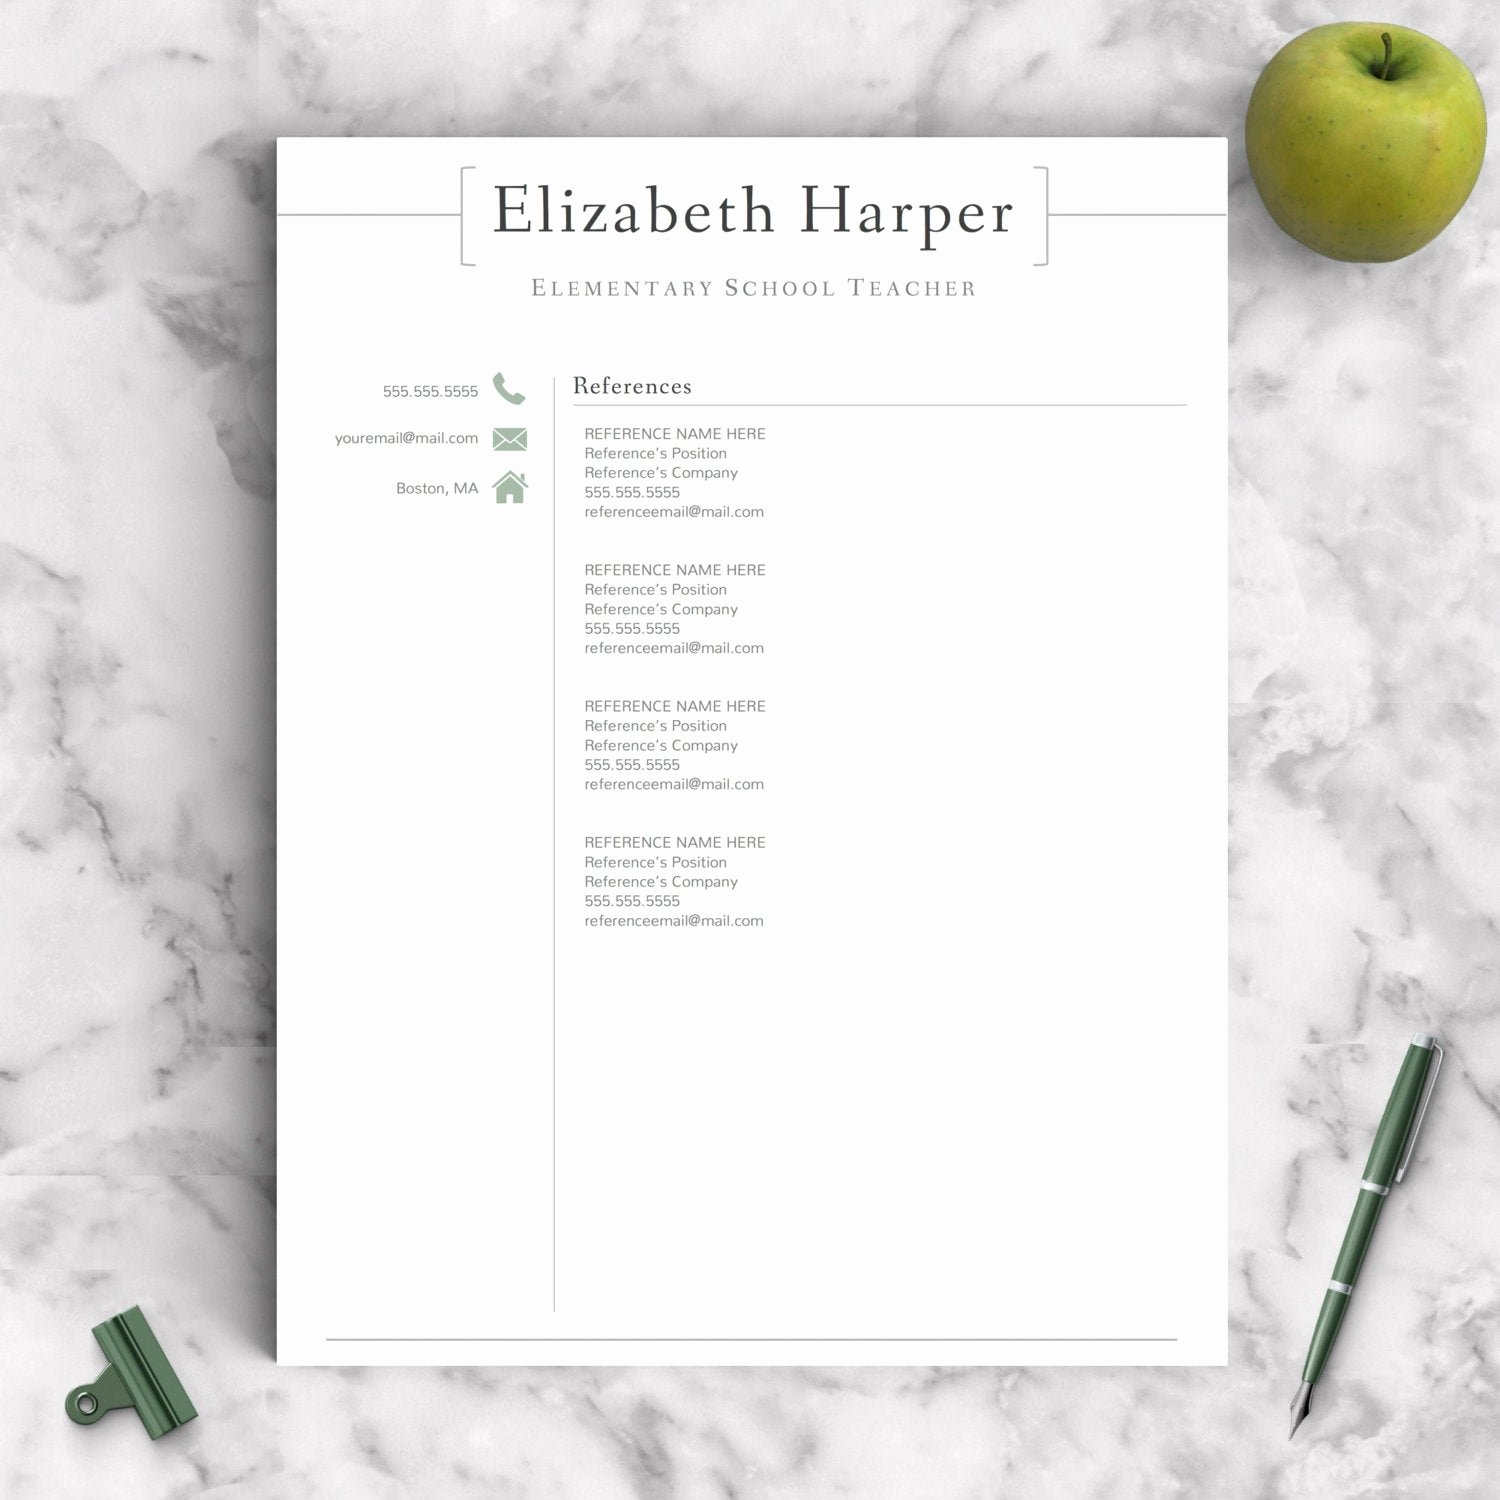 Teacher Resume Template Word New Teacher Resume Template for Word & Pages 1 3 Page Resume for